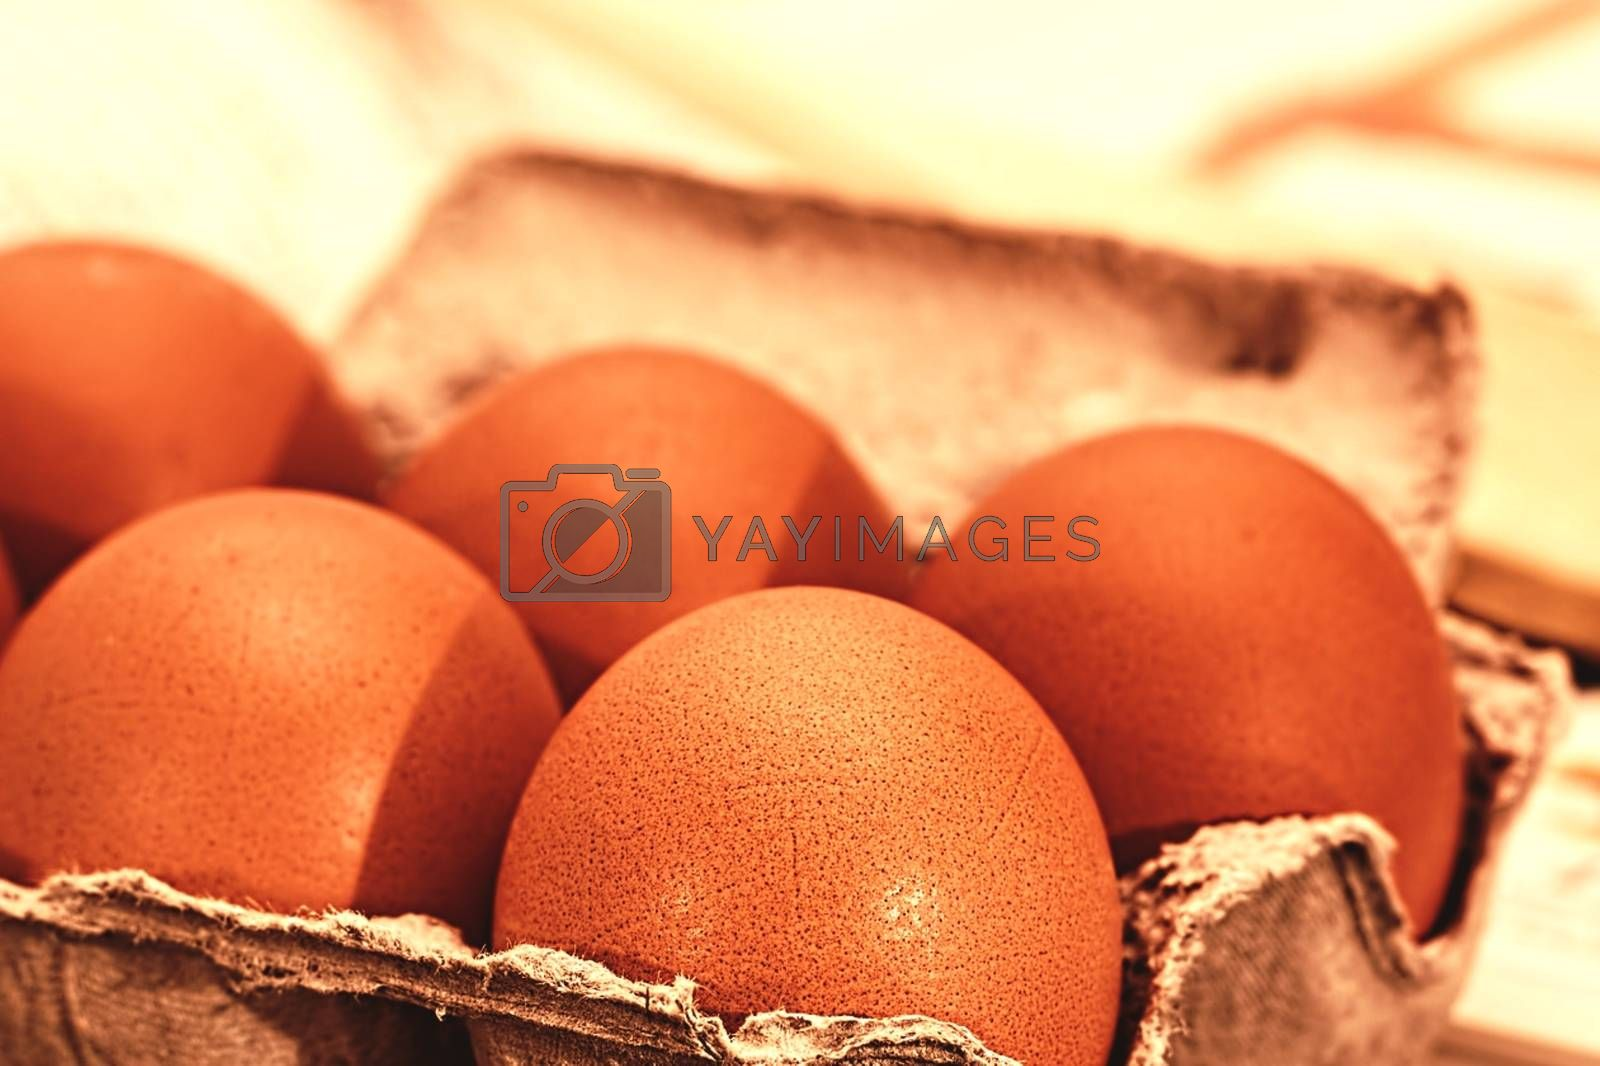 Royalty free image of Five eggs in the egg box  by balage941